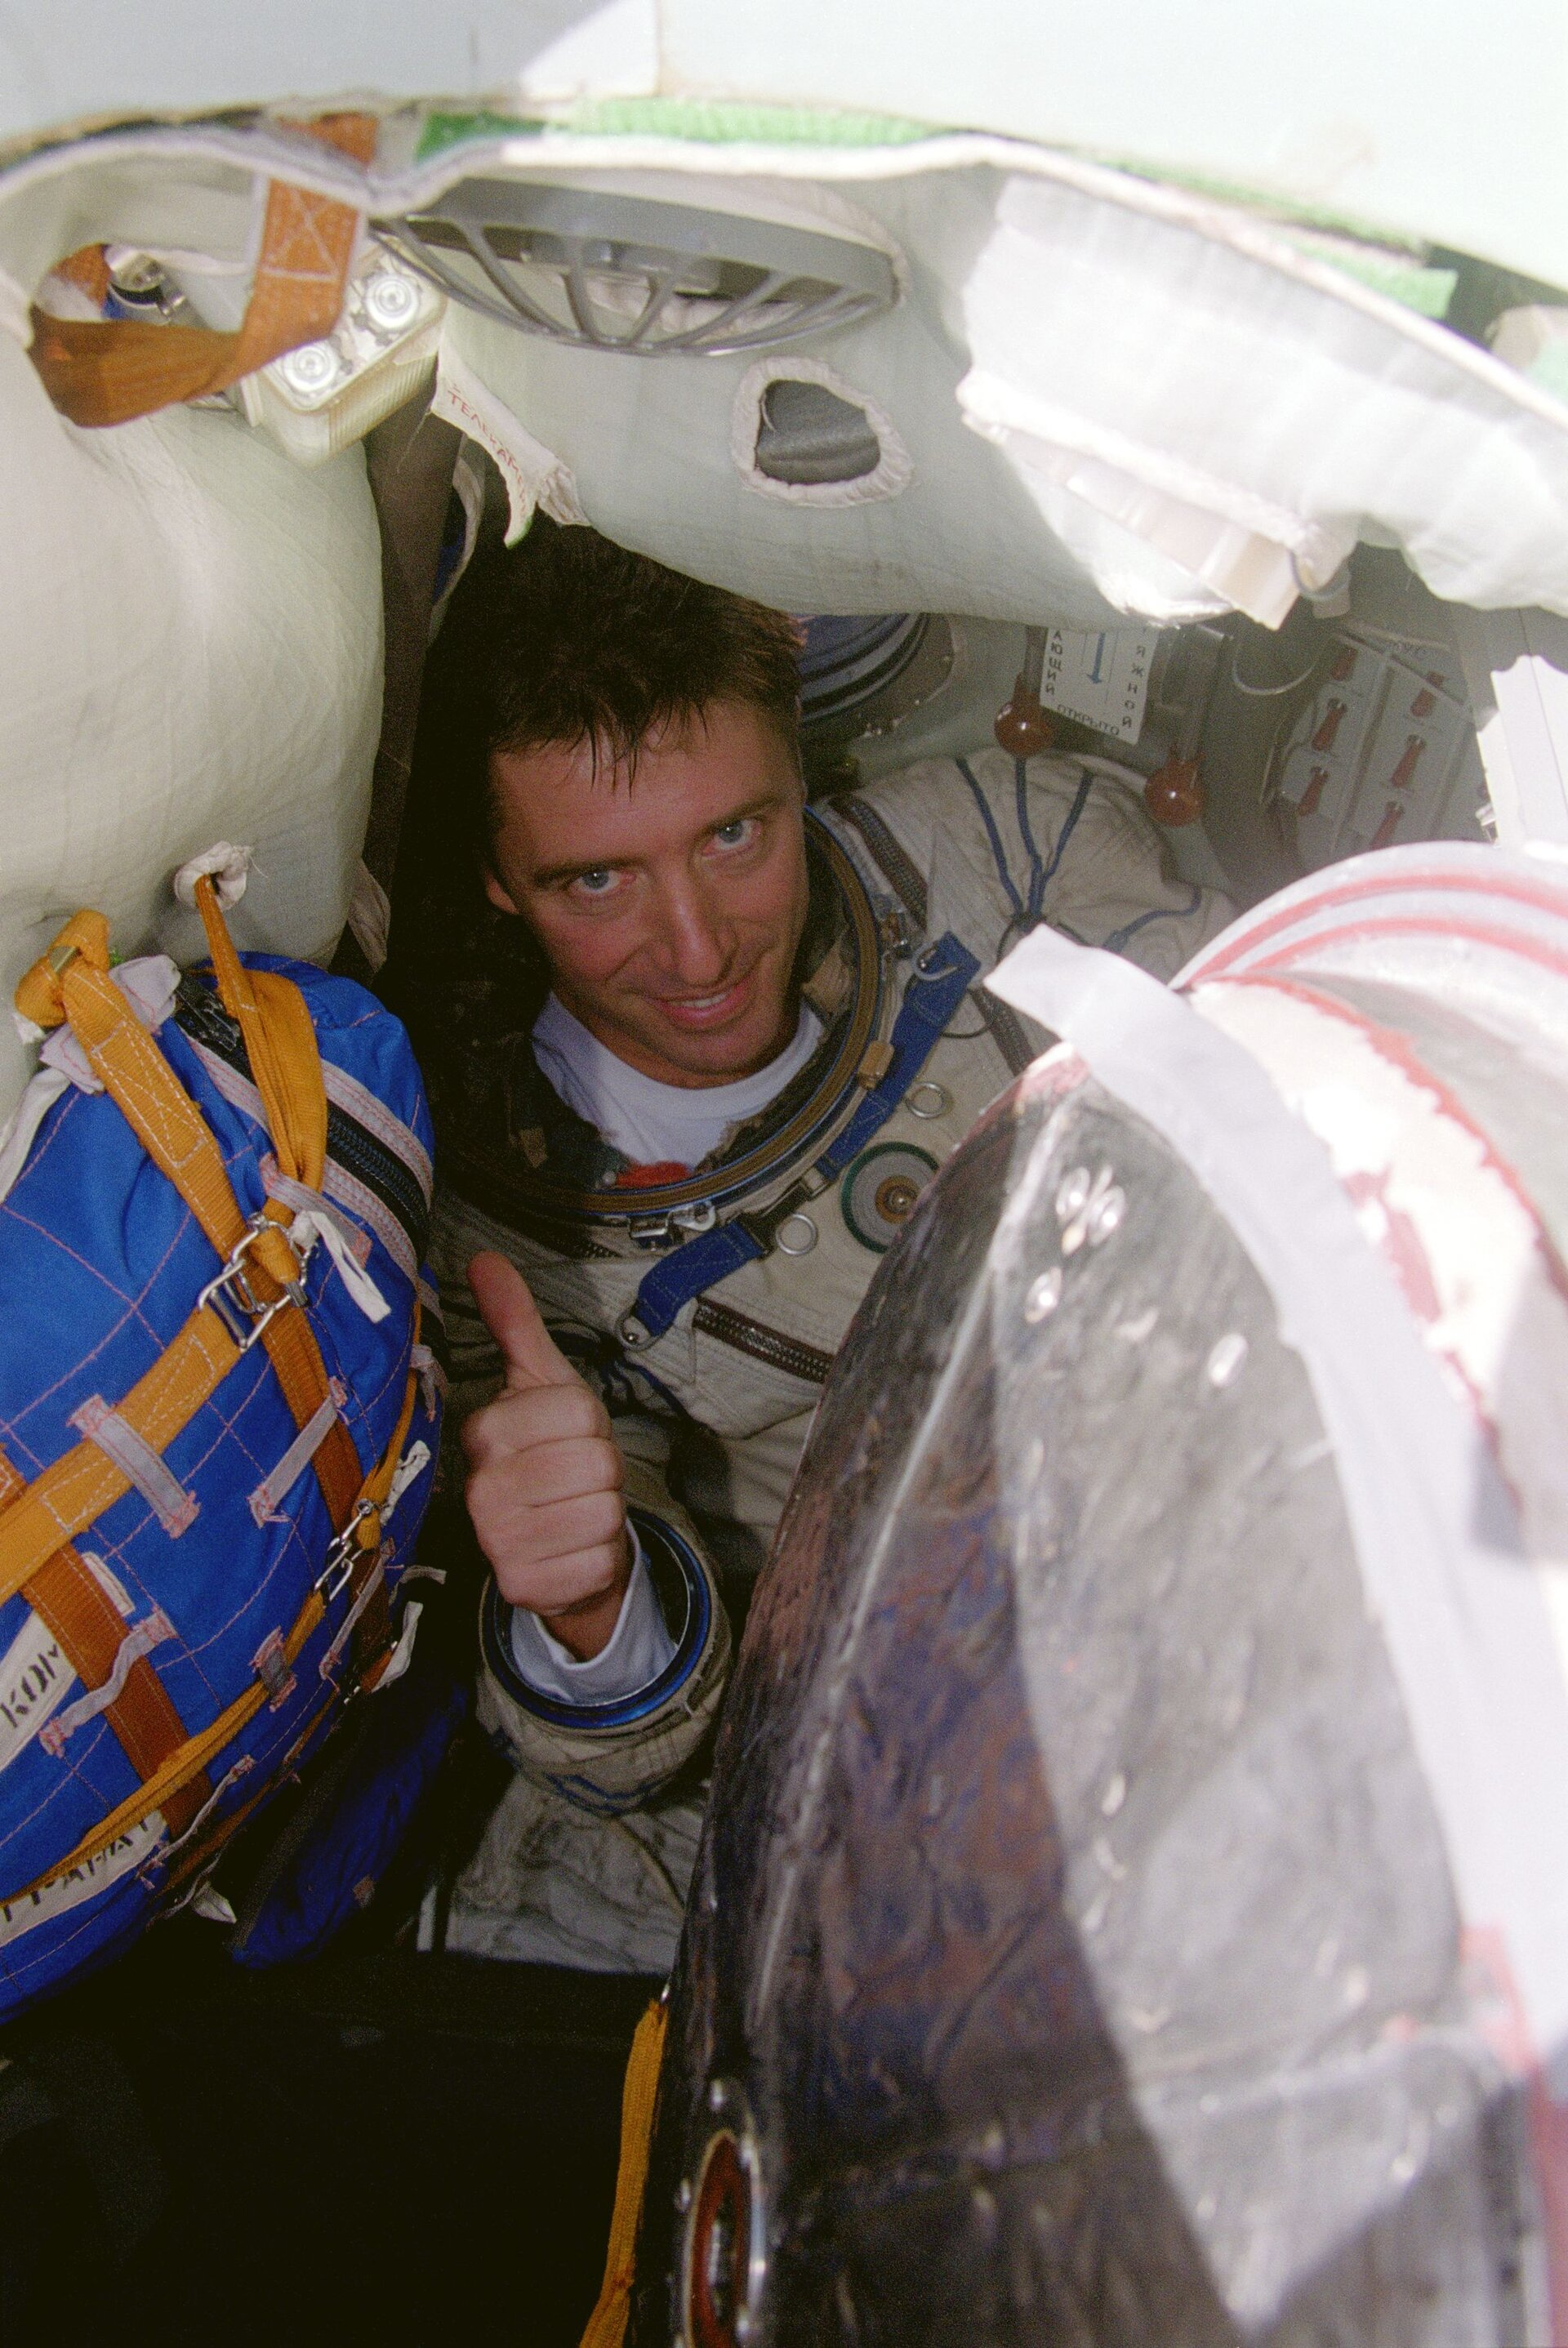 The European astronaut Roberto Vittori during his survival training in Black Sea in November 2001 for the Marco Polo mission.